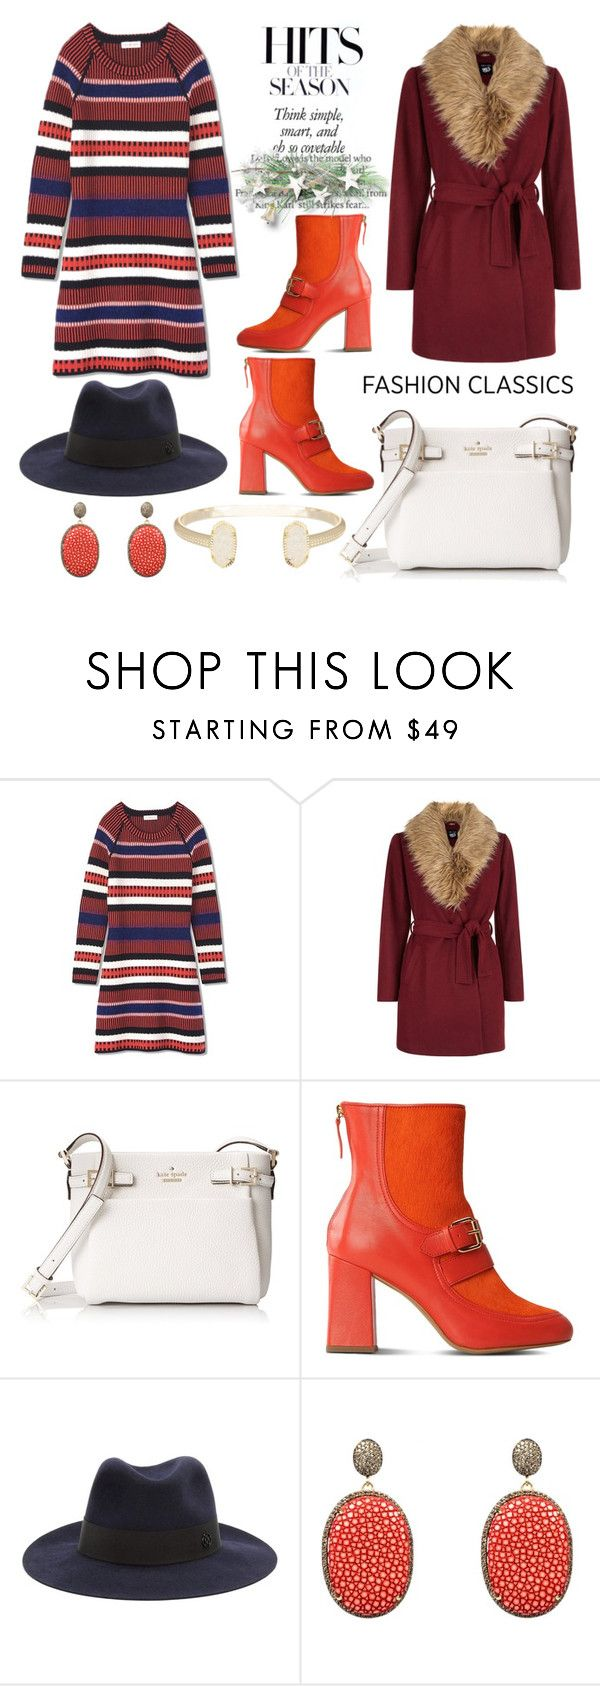 """Sweater Dress"" by hastypudding ❤ liked on Polyvore featuring ASOS, Tory Burch, New Look, Kate Spade, Boutique Moschino, Maison Michel, Latelita and Kendra Scott"